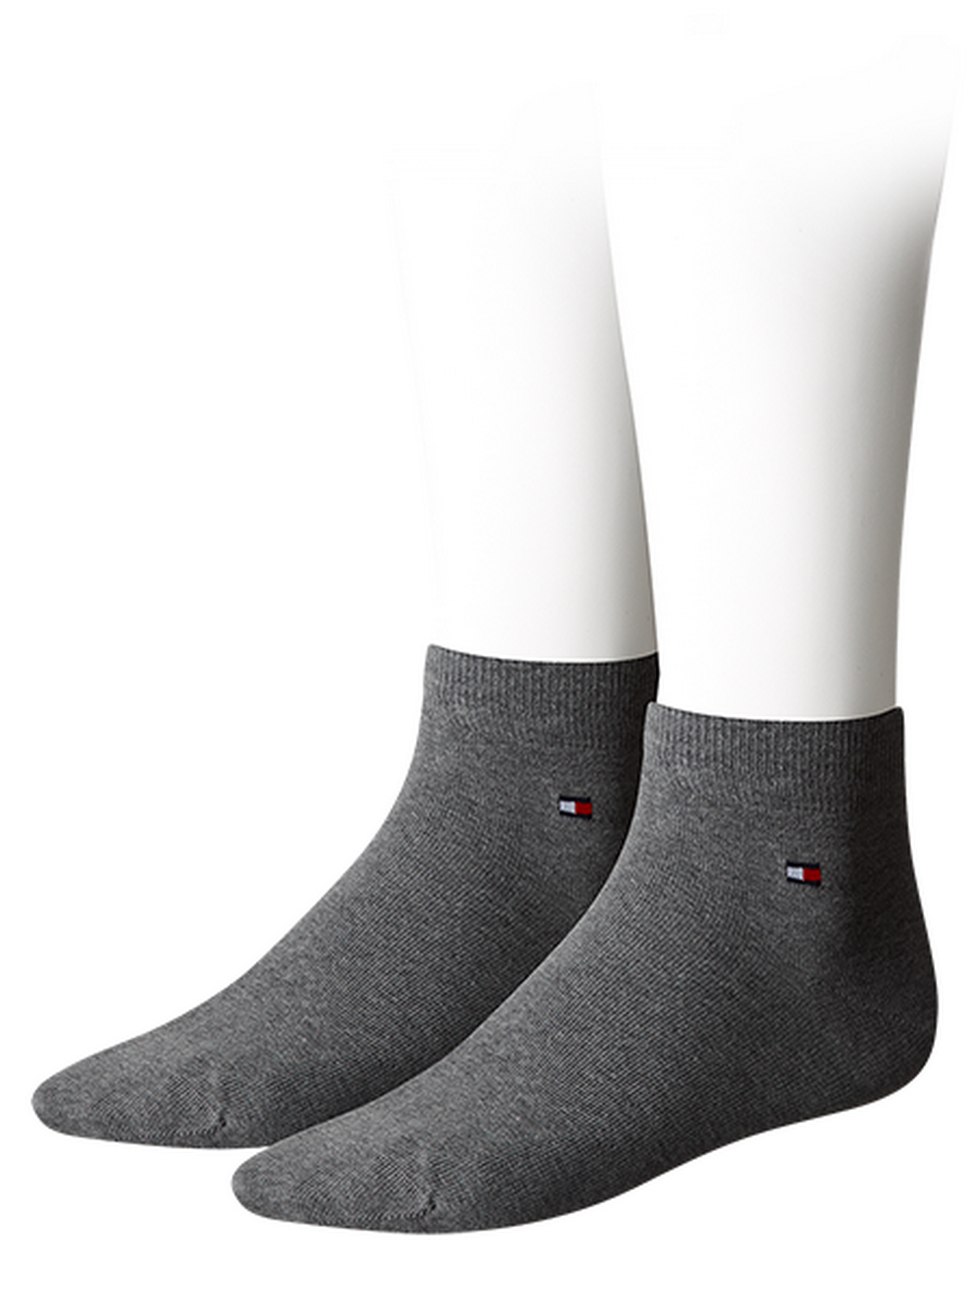 Tommy Hilfiger Herren Quarter Socken Flag - 2er Pack